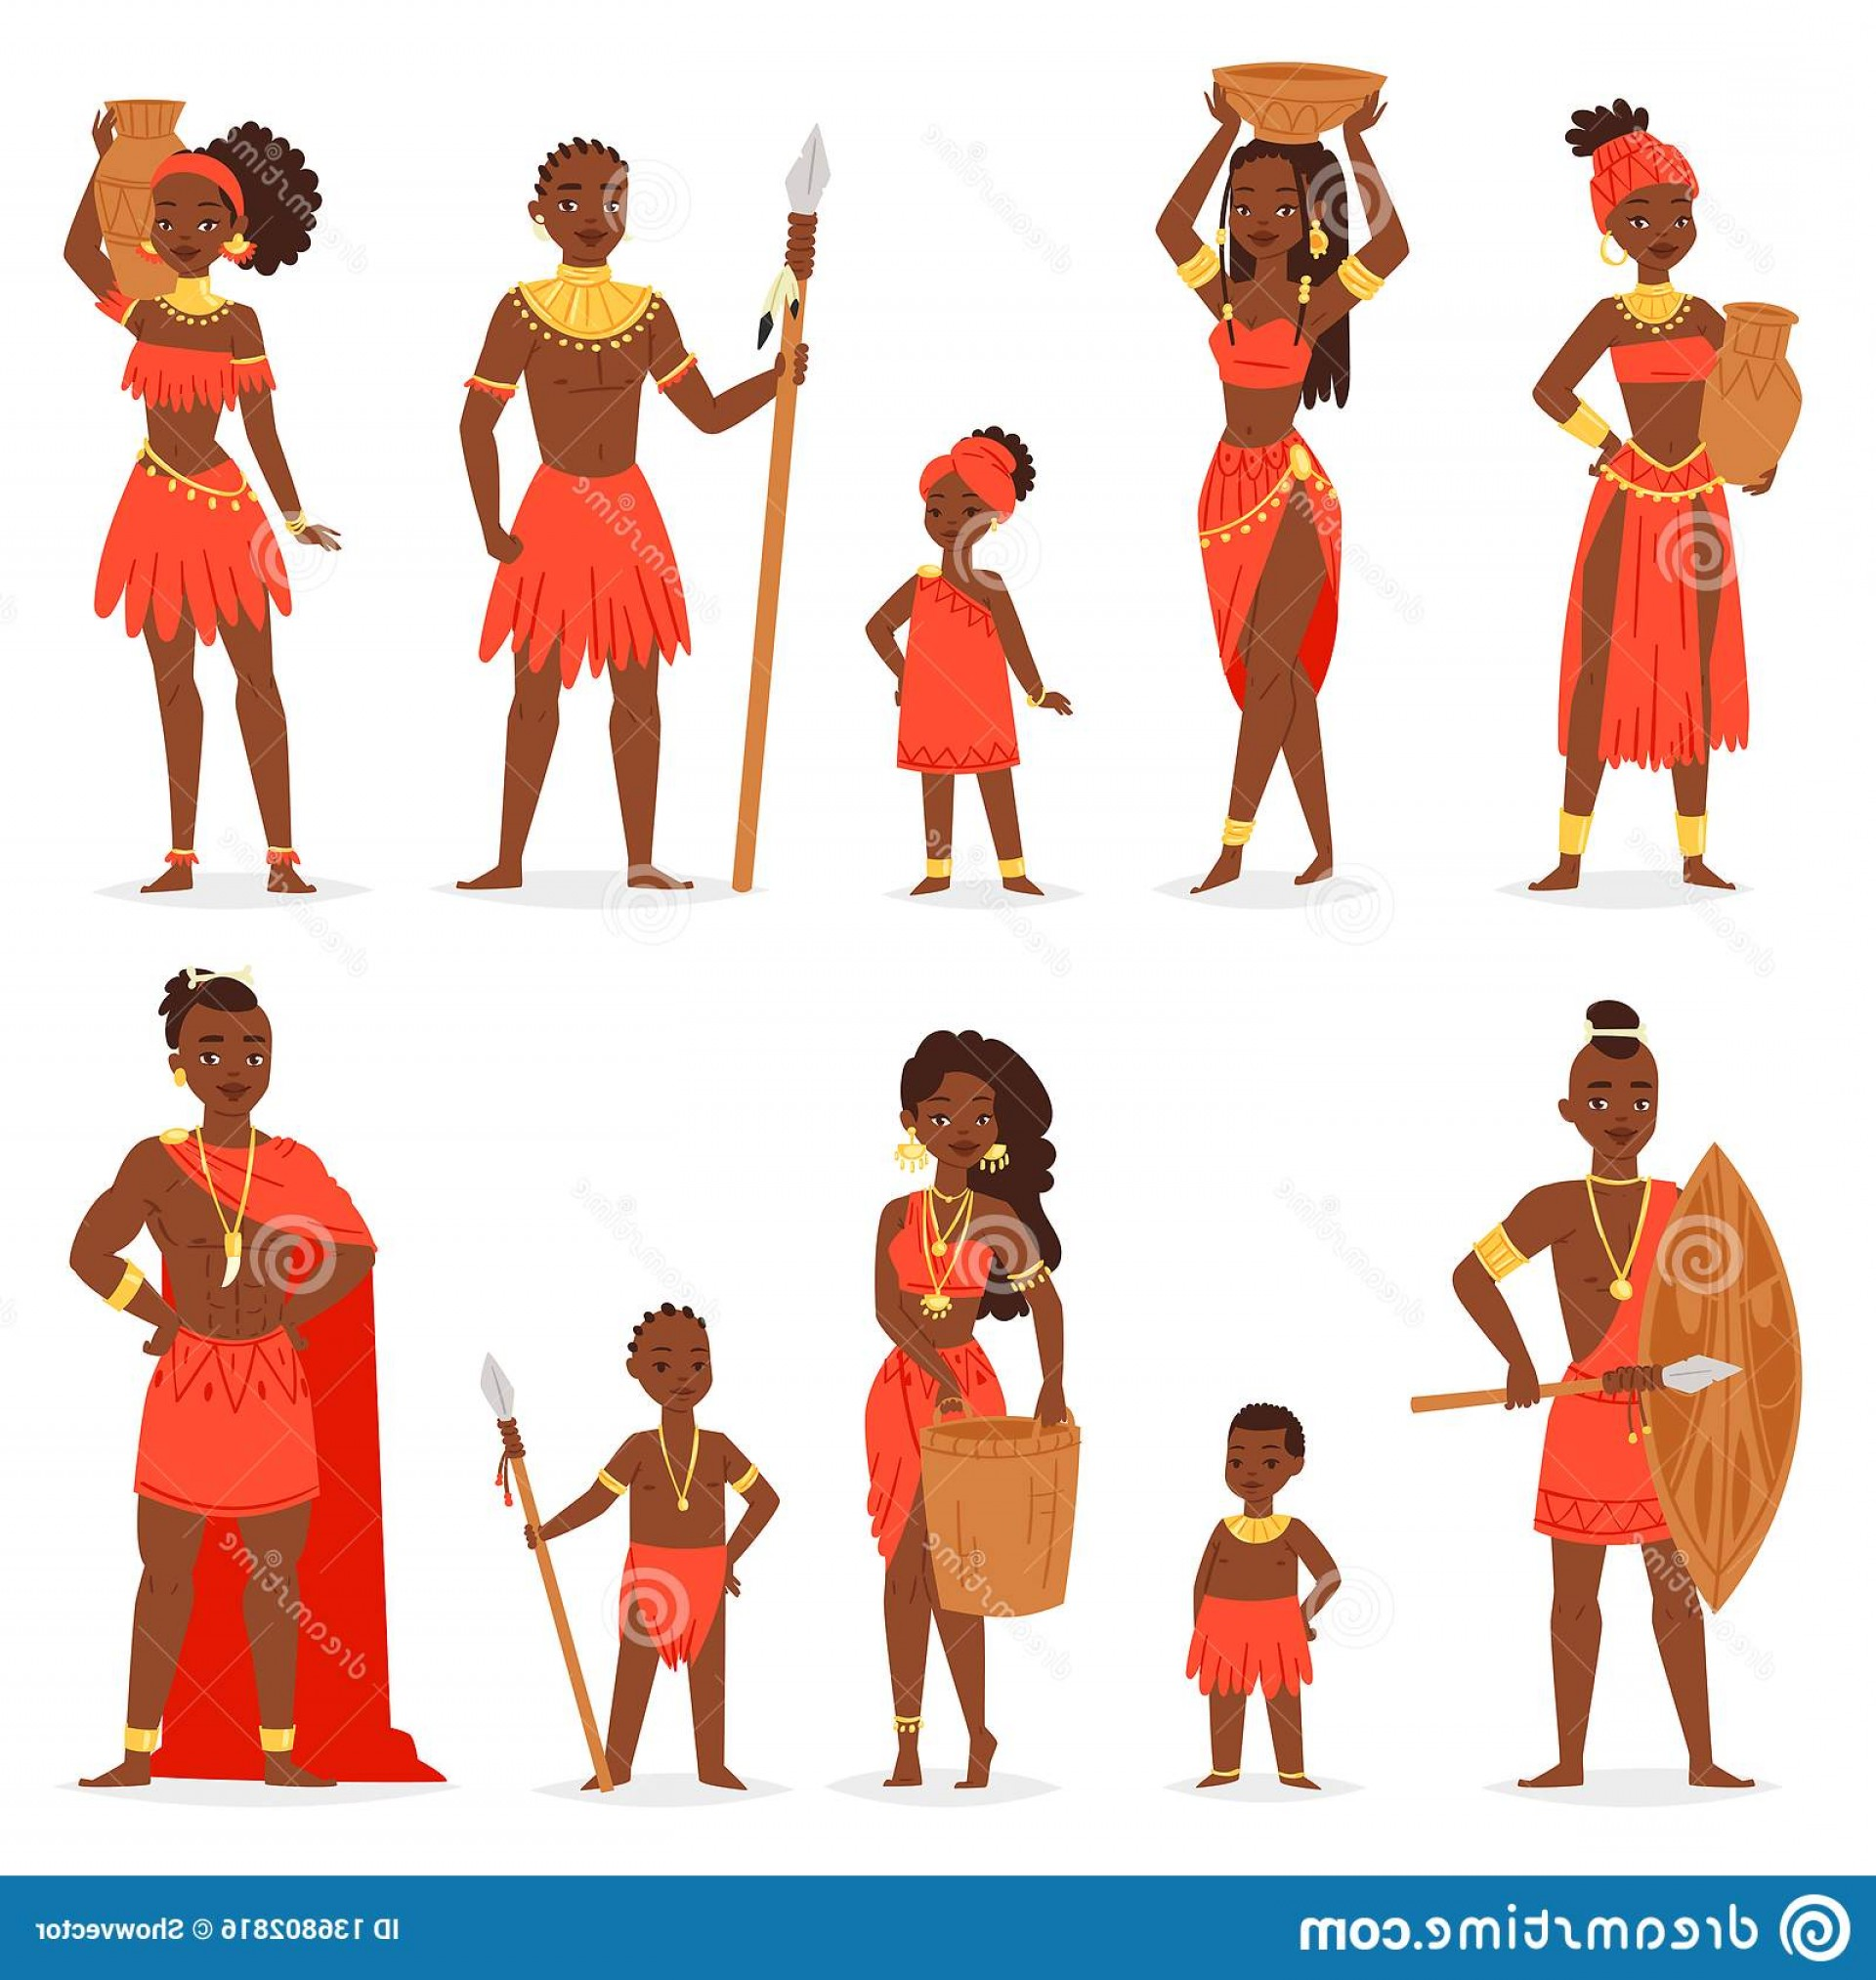 Vector African People: African People Vector Black Man Beautiful Woman Character Traditional Tribal Clothing Dress Africa Illustration African Image